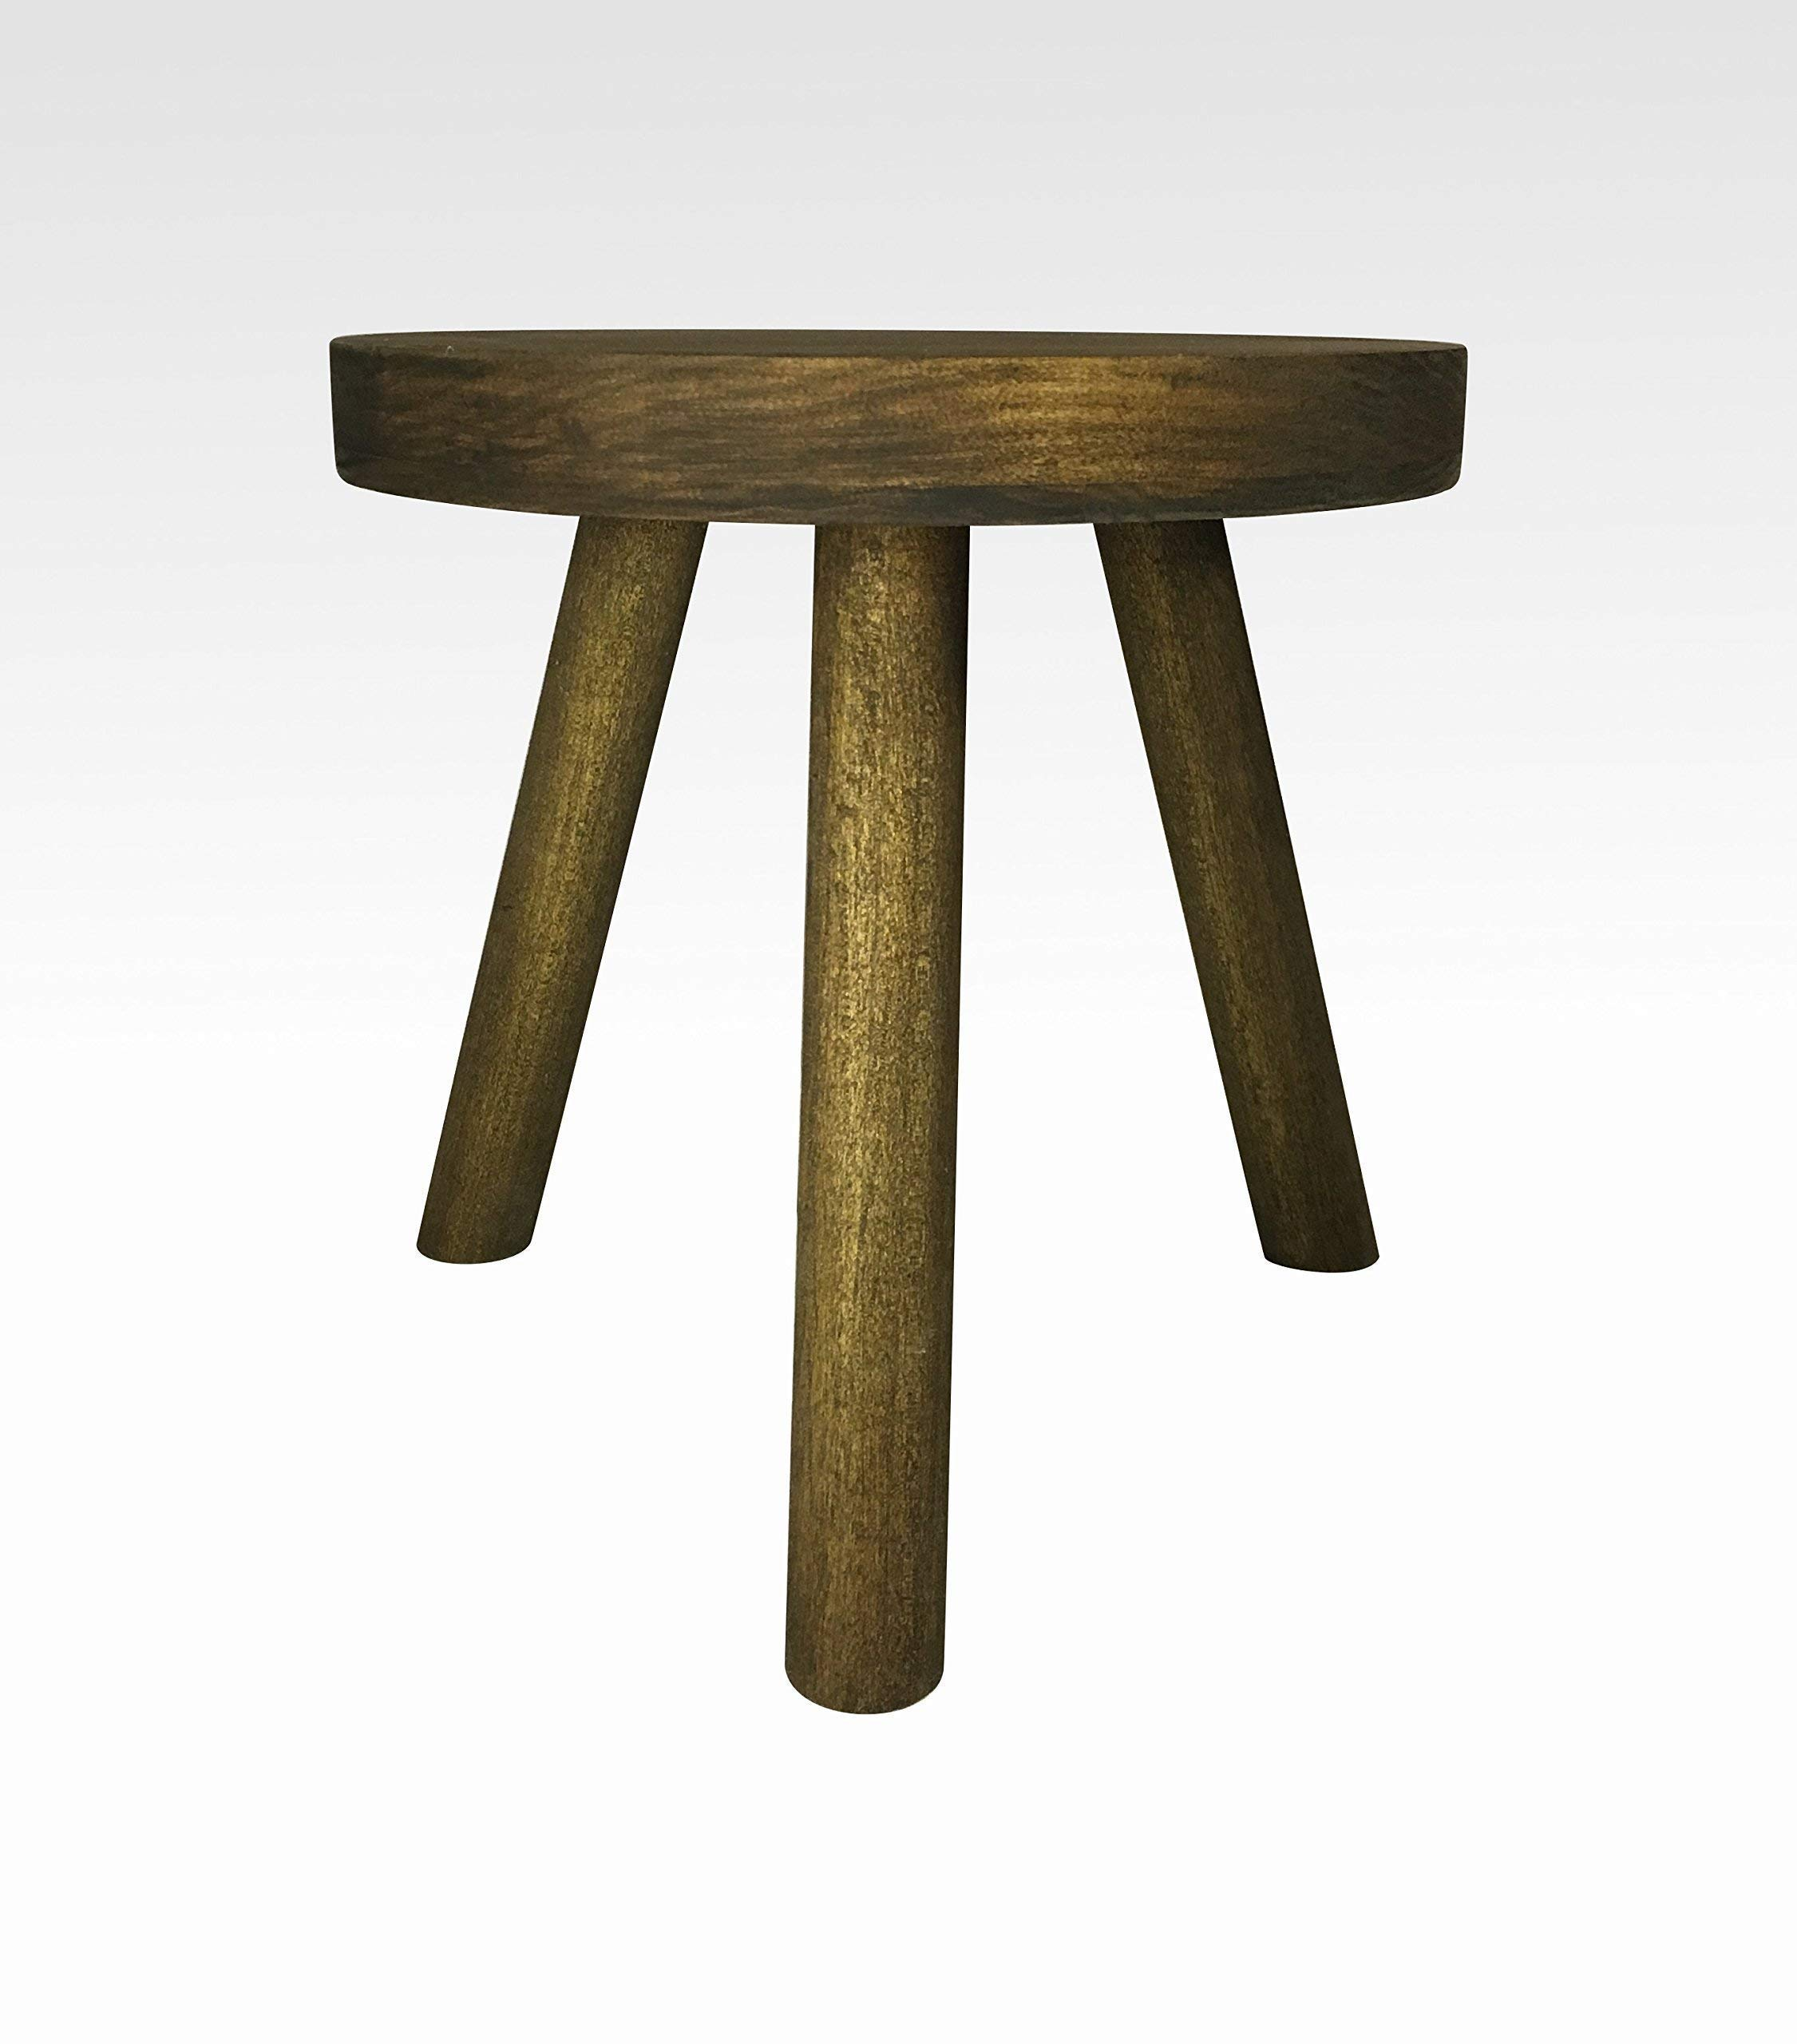 Modern Plant Stand Three Leg Stool by CW Furniture in Walnut Indoor Wood Flower Pot Base Display Holder Solid Wooden Kids Chair Table Simple Minimalist Small by Candlewood Furniture